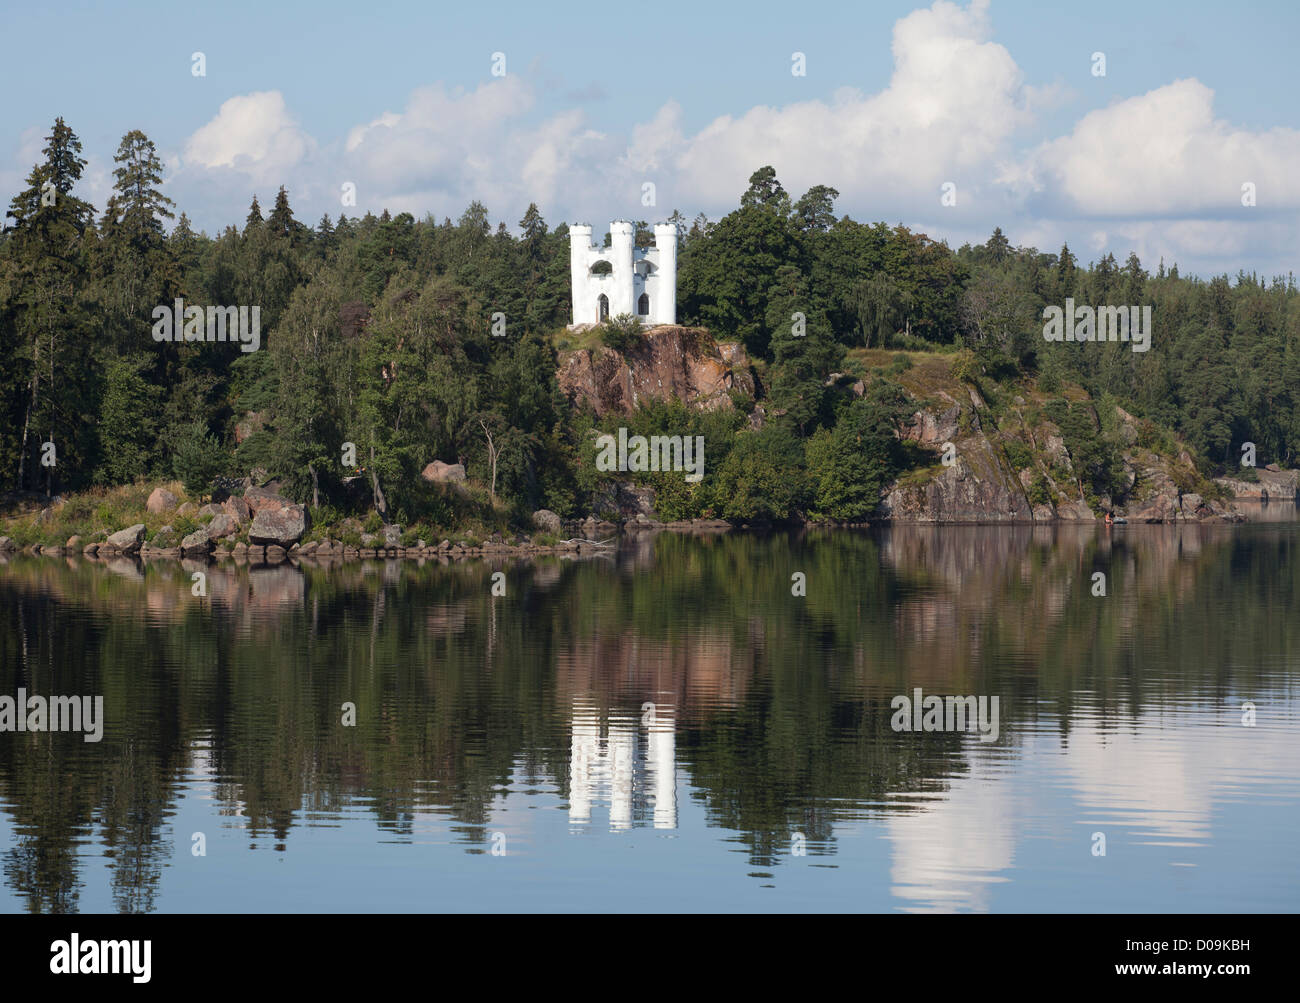 The Island of the Dead in Mon Repos. Vyborg in Leningrad Oblast, Russia. - Stock Image